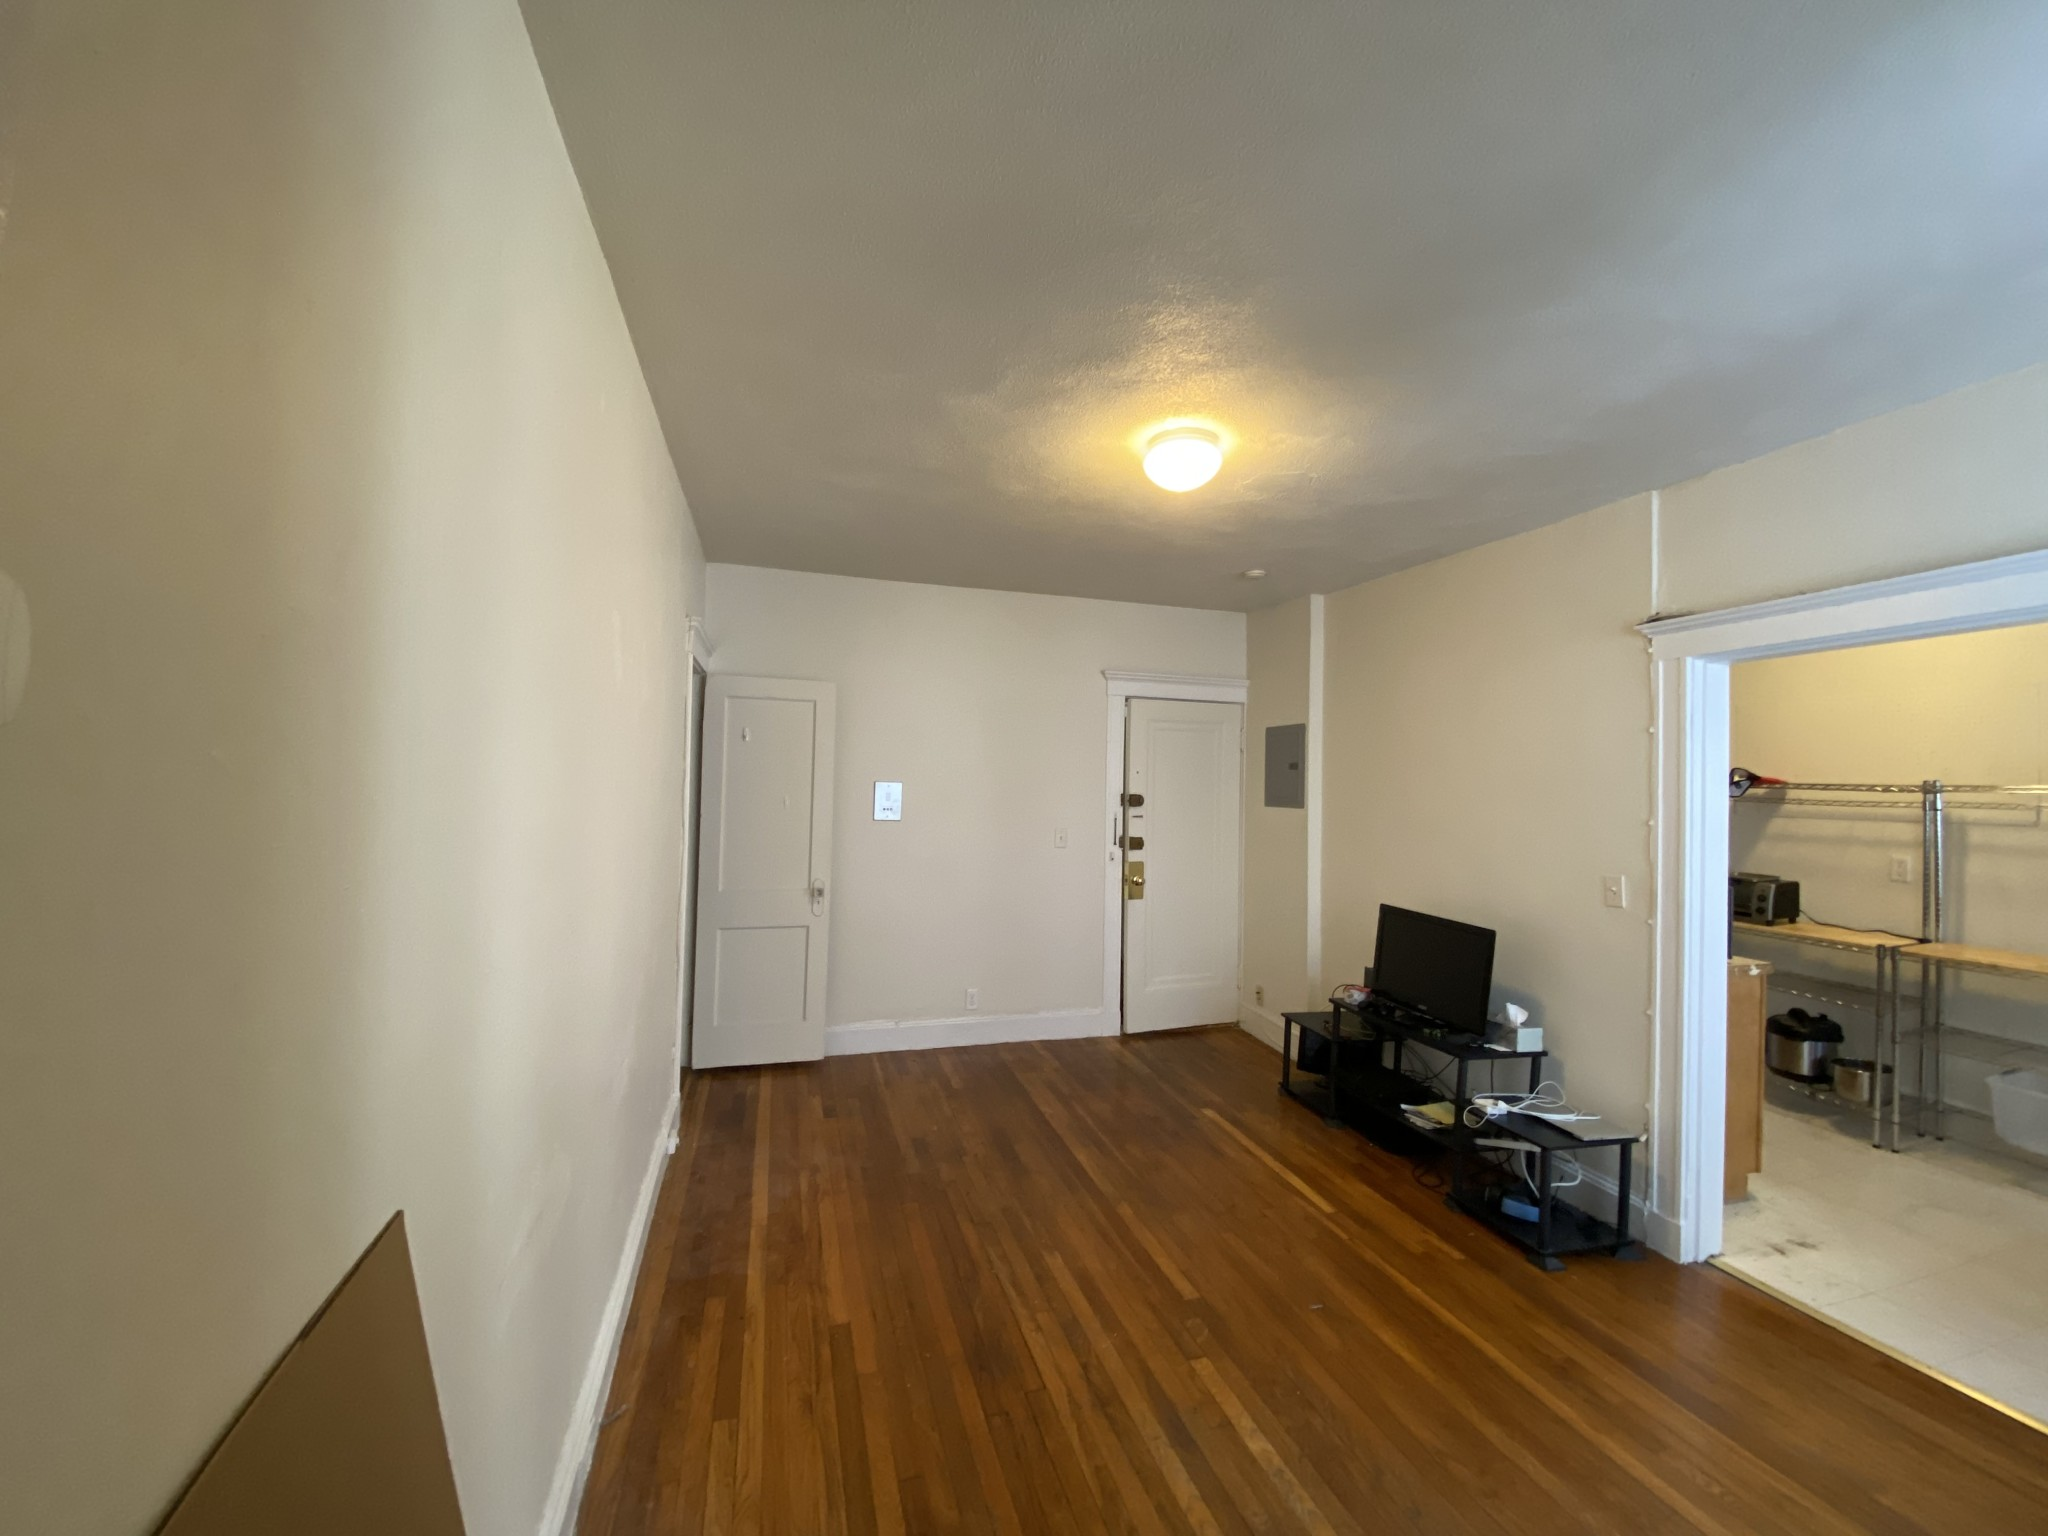 1 Bed, 1 Bath apartment in Boston, Allston for $1,895